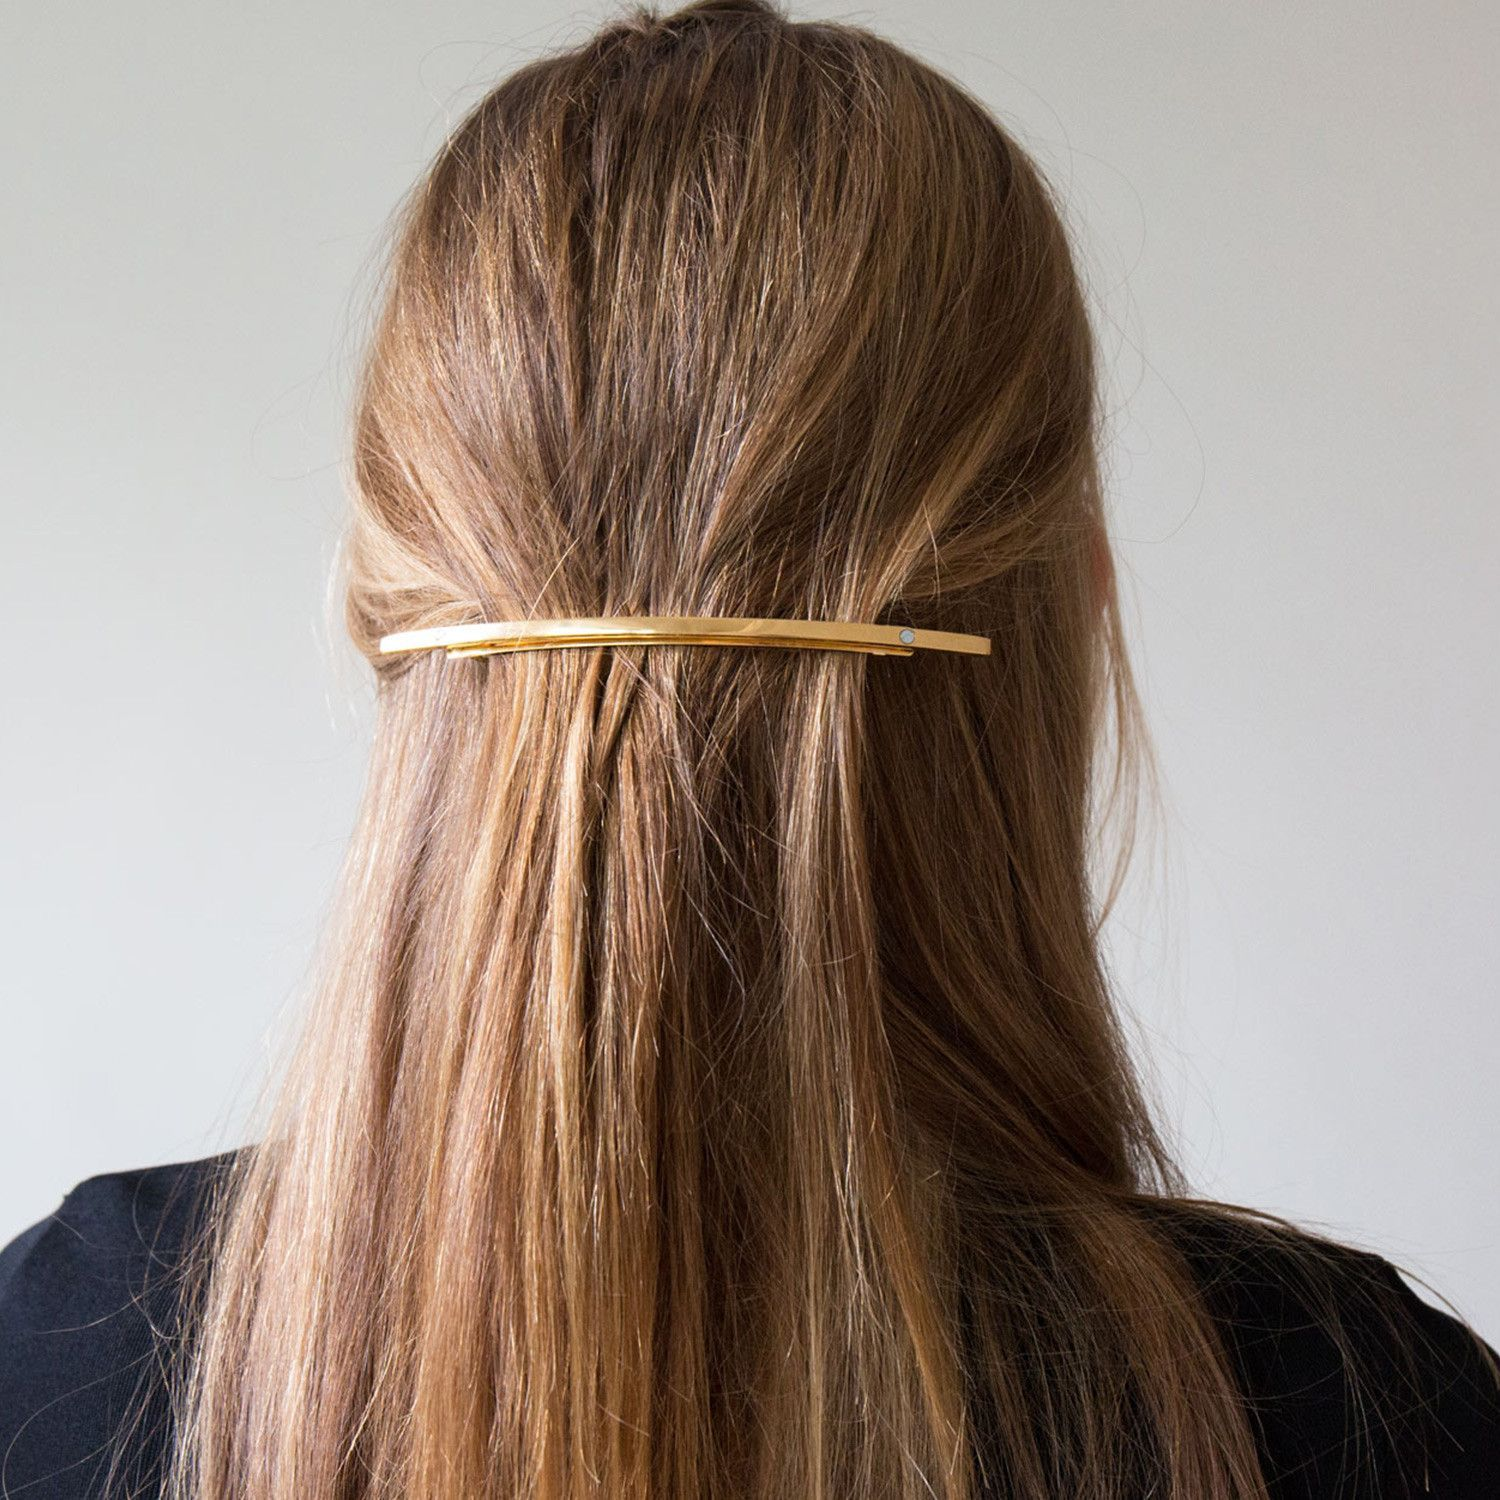 Barrette Hairstyles Interesting Sylvain Le Hen Gold Hair Barrette  Gold Hair Hair Barrettes And